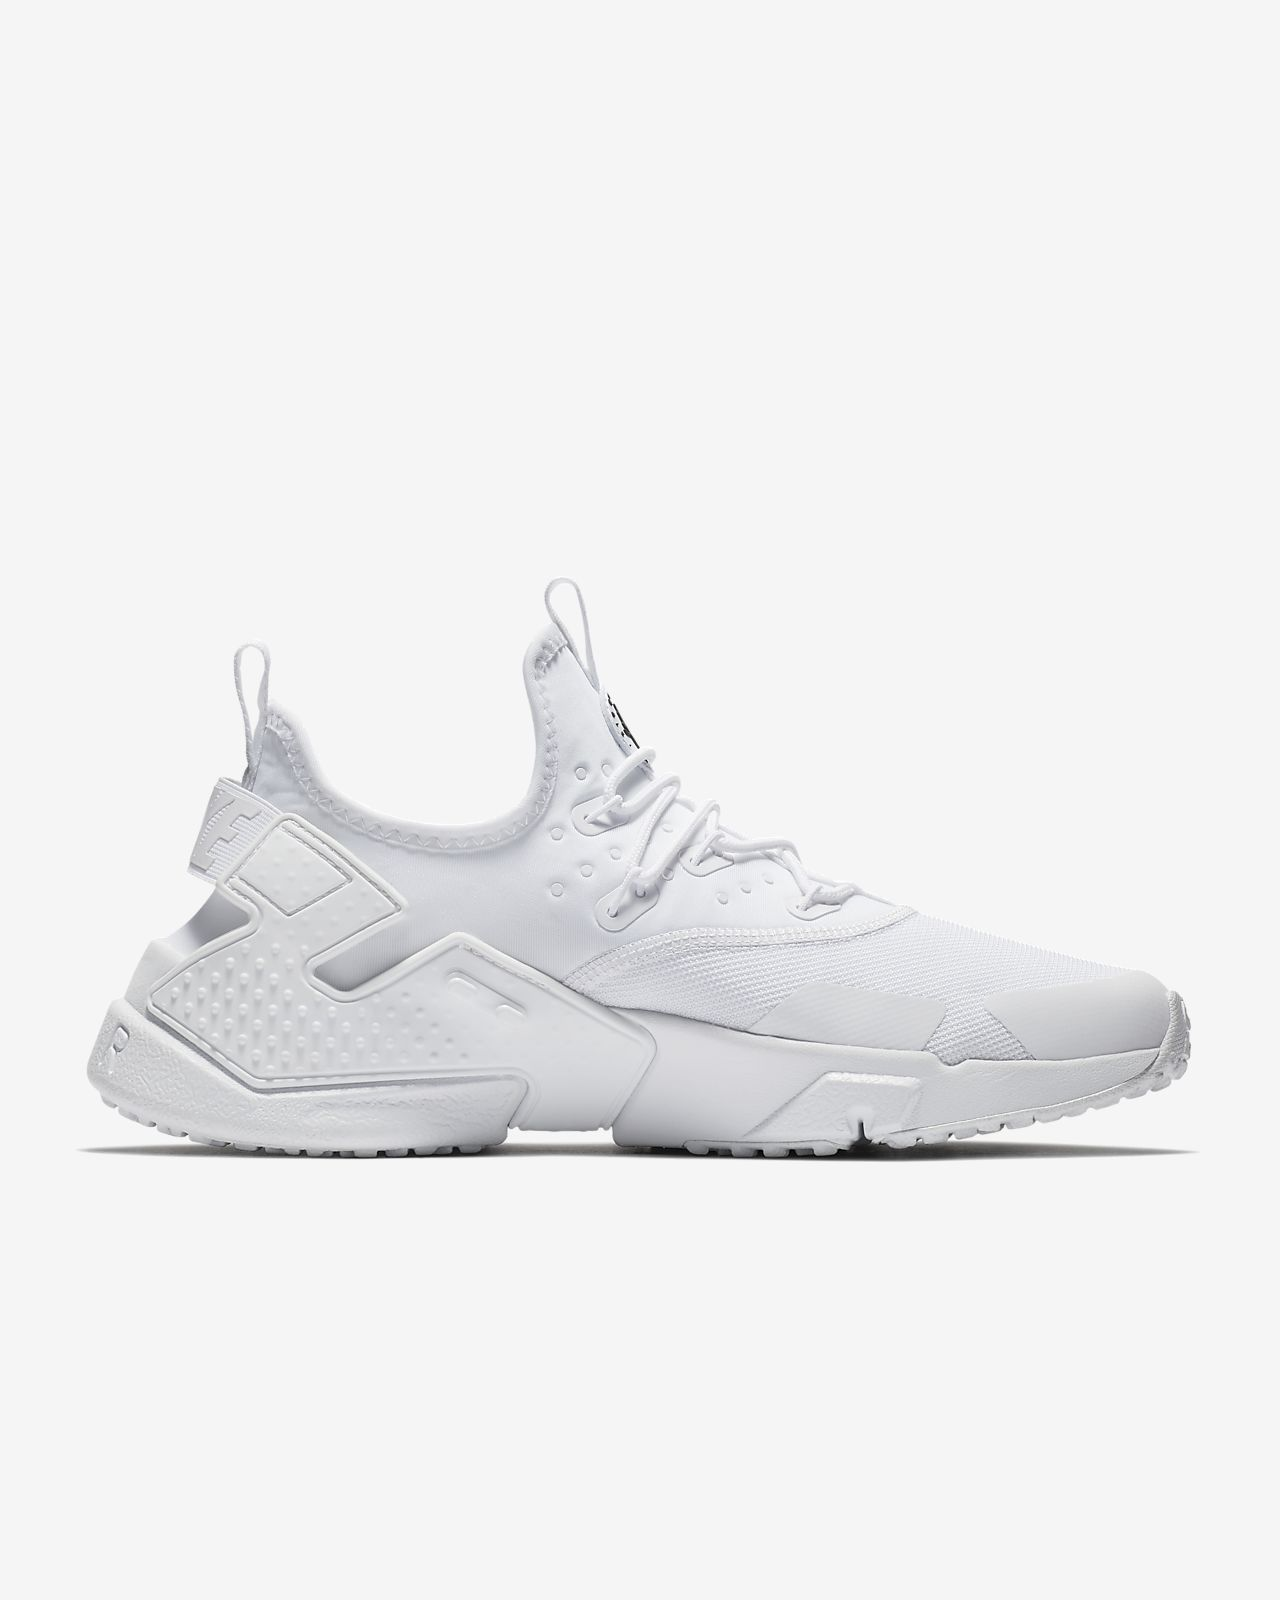 5056f5ba73a6 Nike Air Huarache Drift Men s Shoe. Nike.com